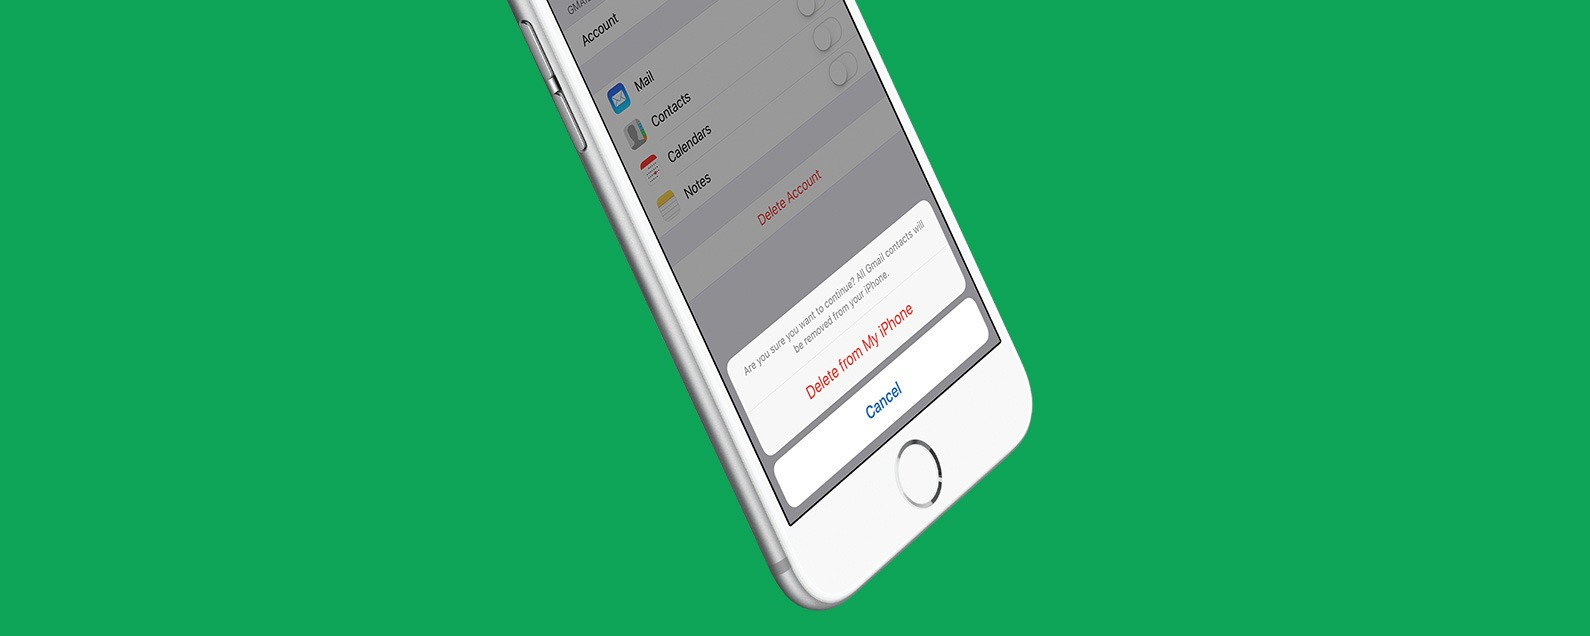 How to stop pop up ads on iphone apps